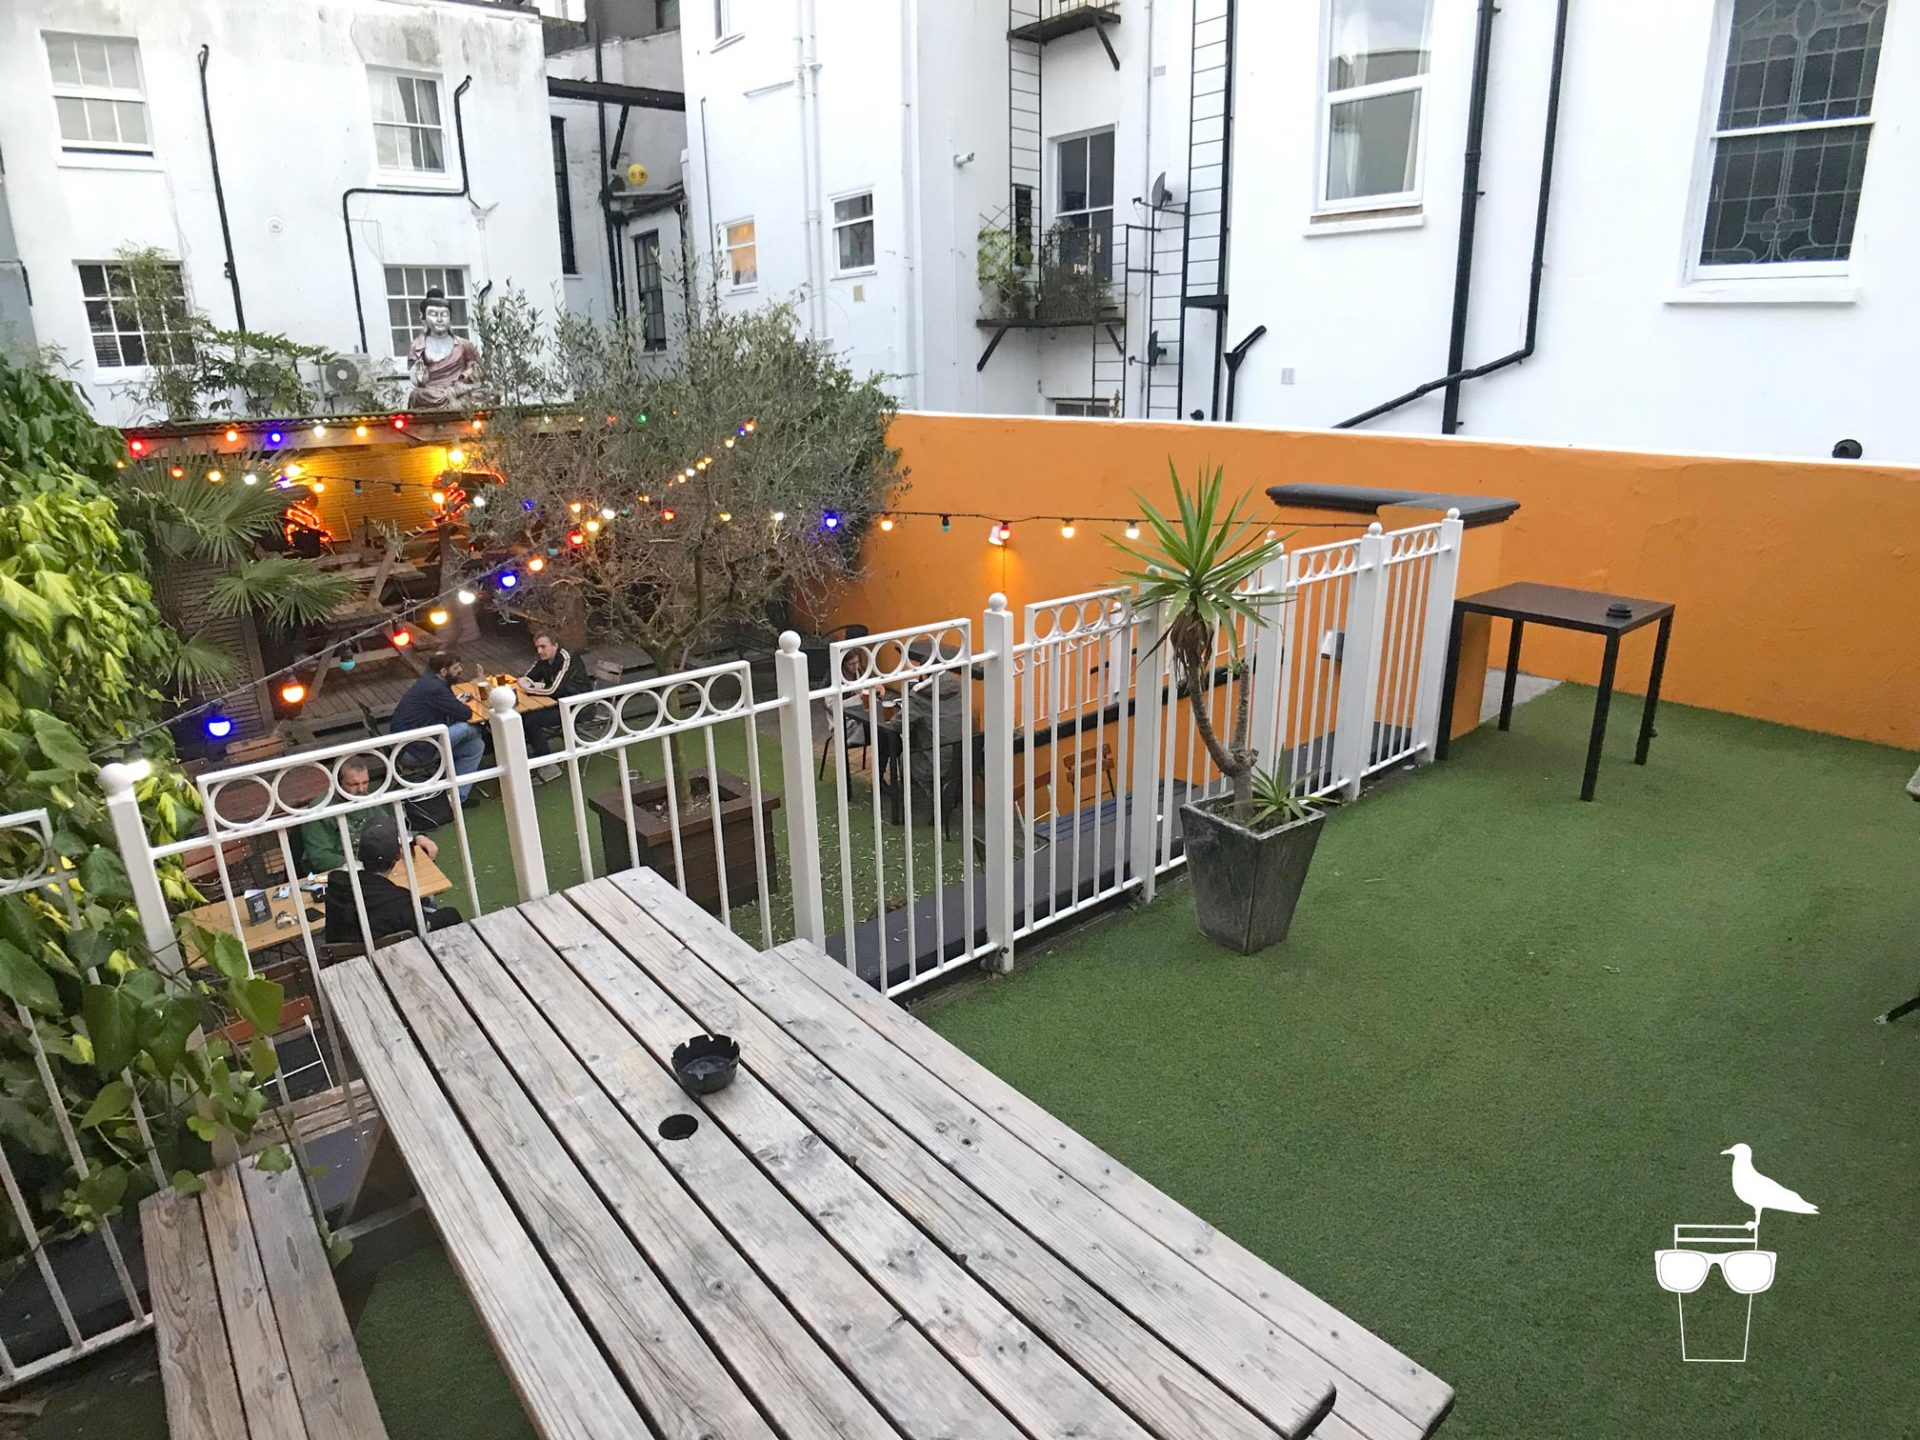 sidewinder-brighton-rear-garden-view